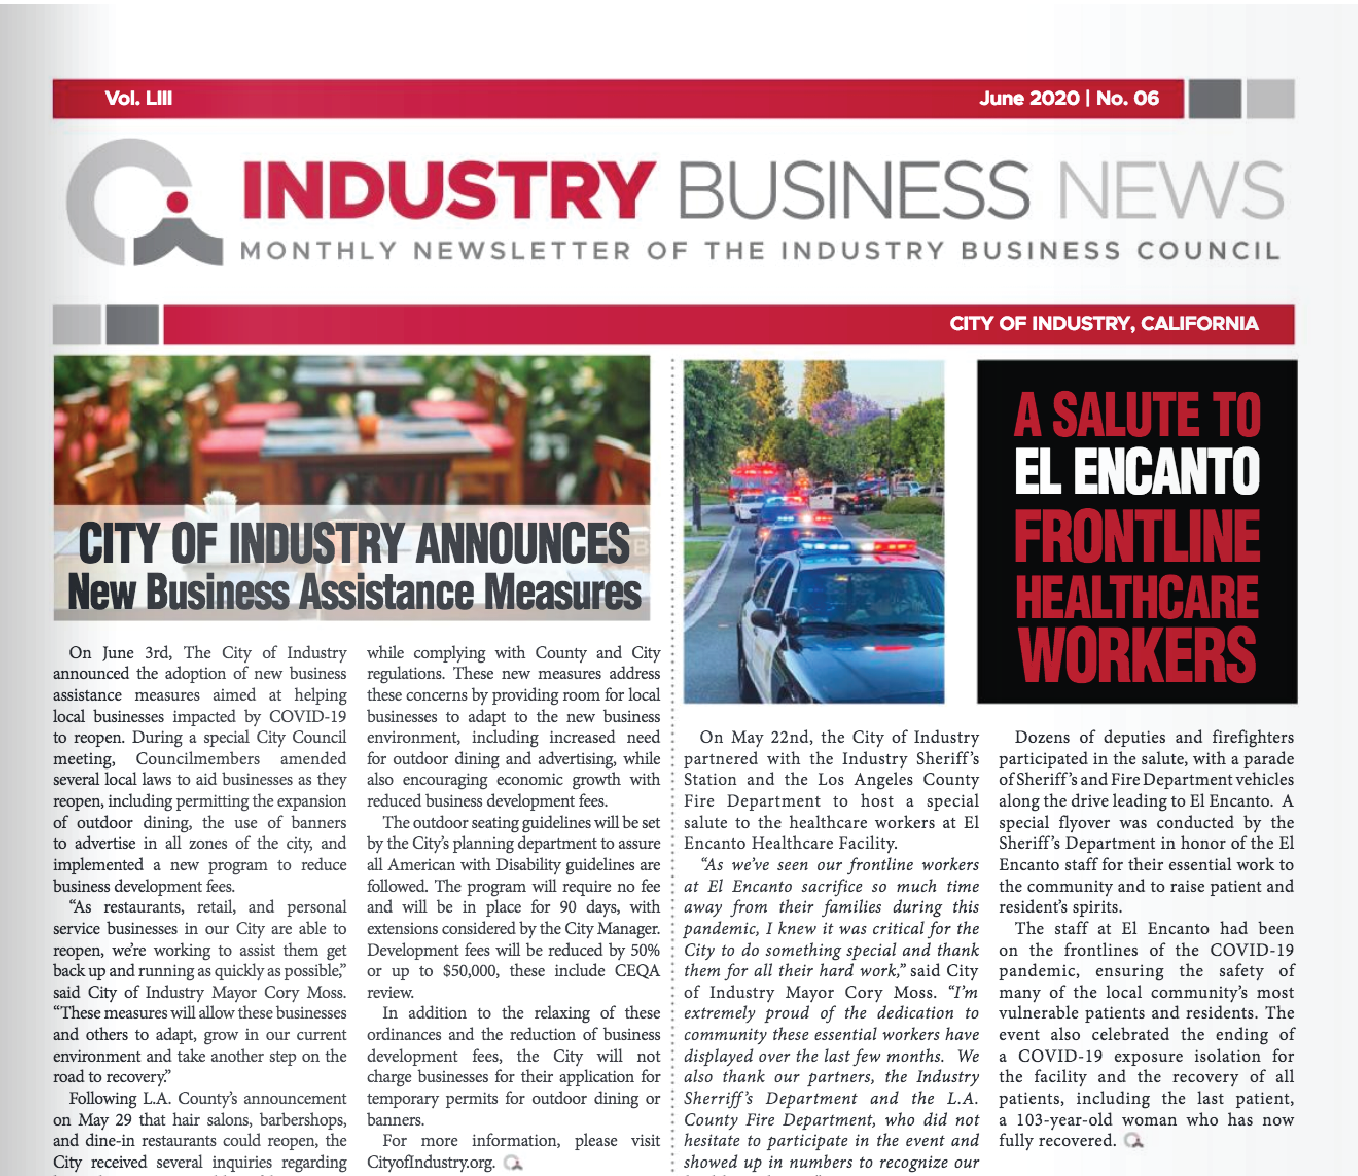 NEWSLETTER | 2020 JUNE INDUSTRY BUSINESS NEWS